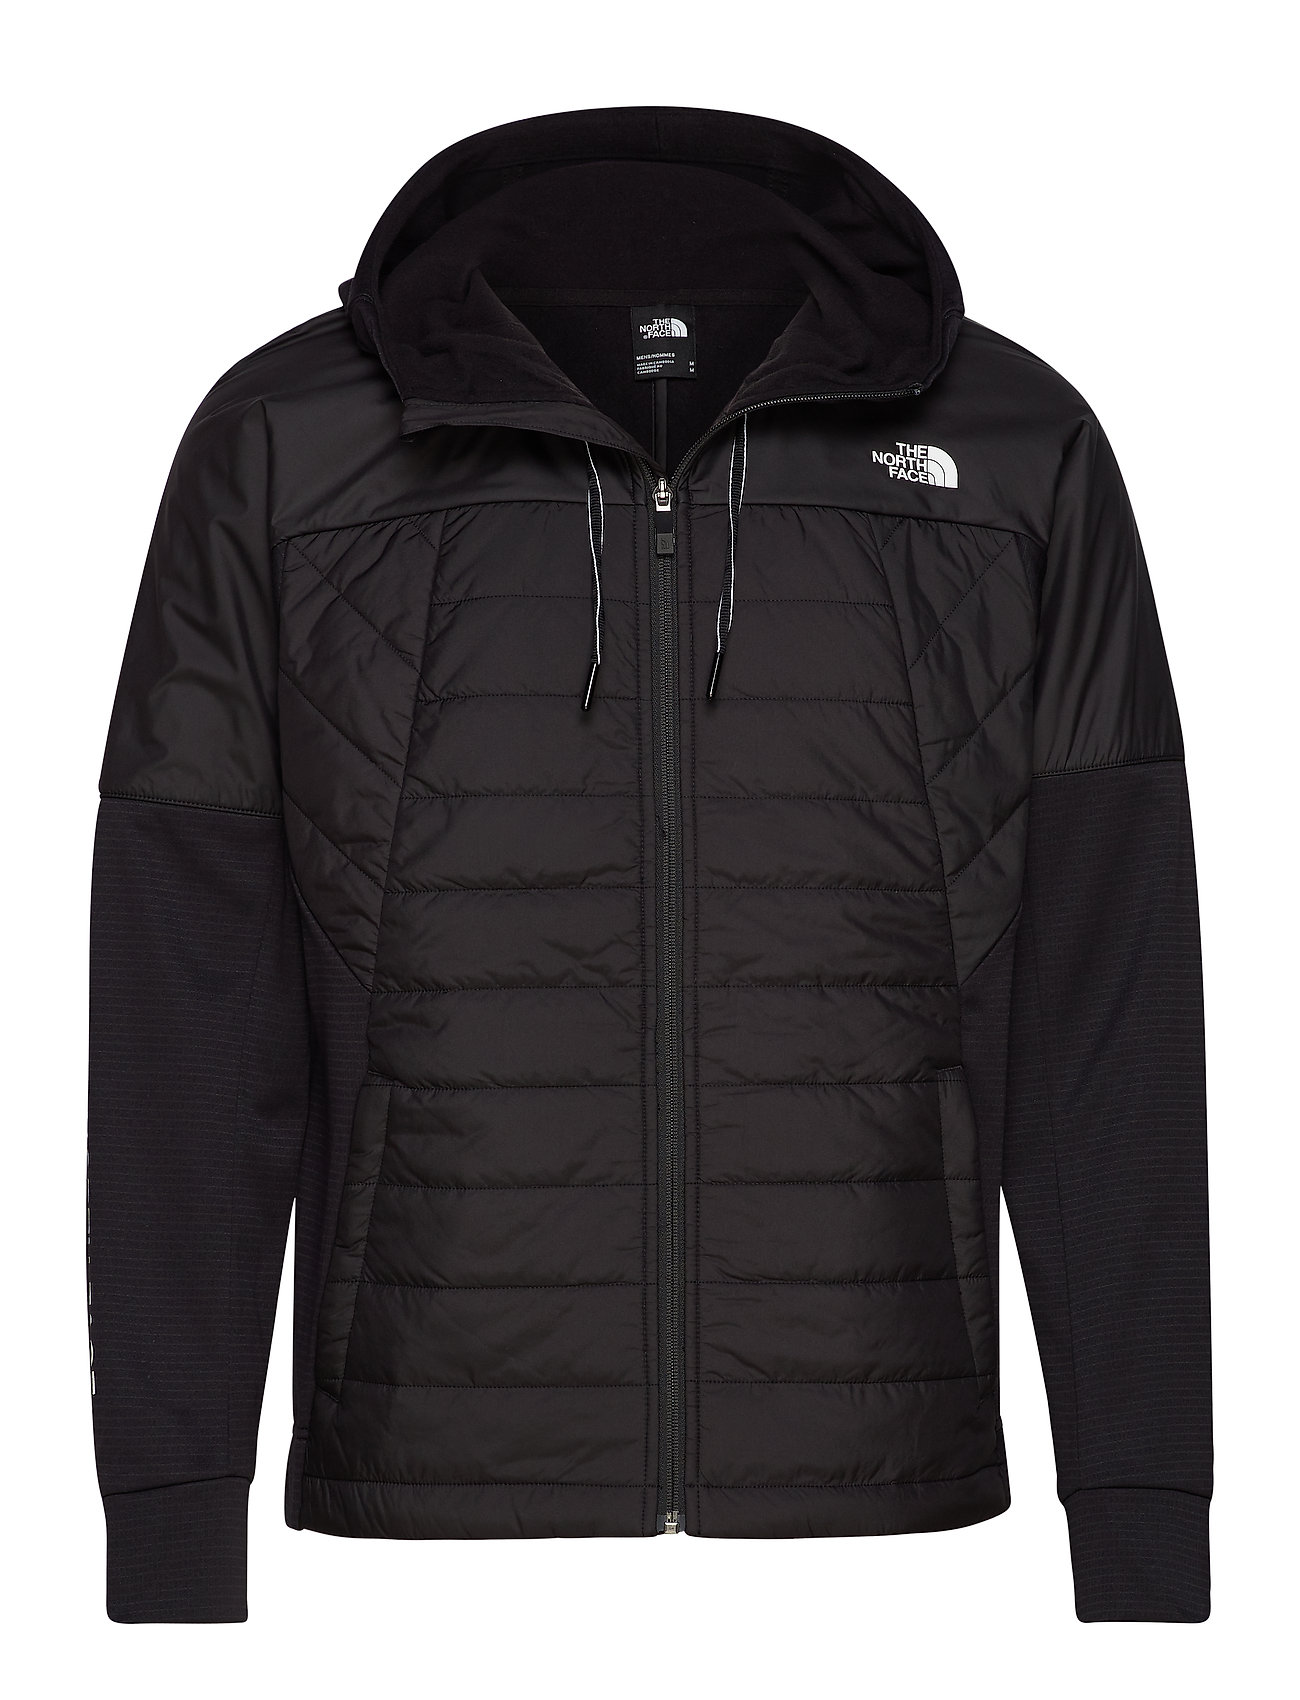 The North Face M TNL HYB INS JKT - TNF BLACK